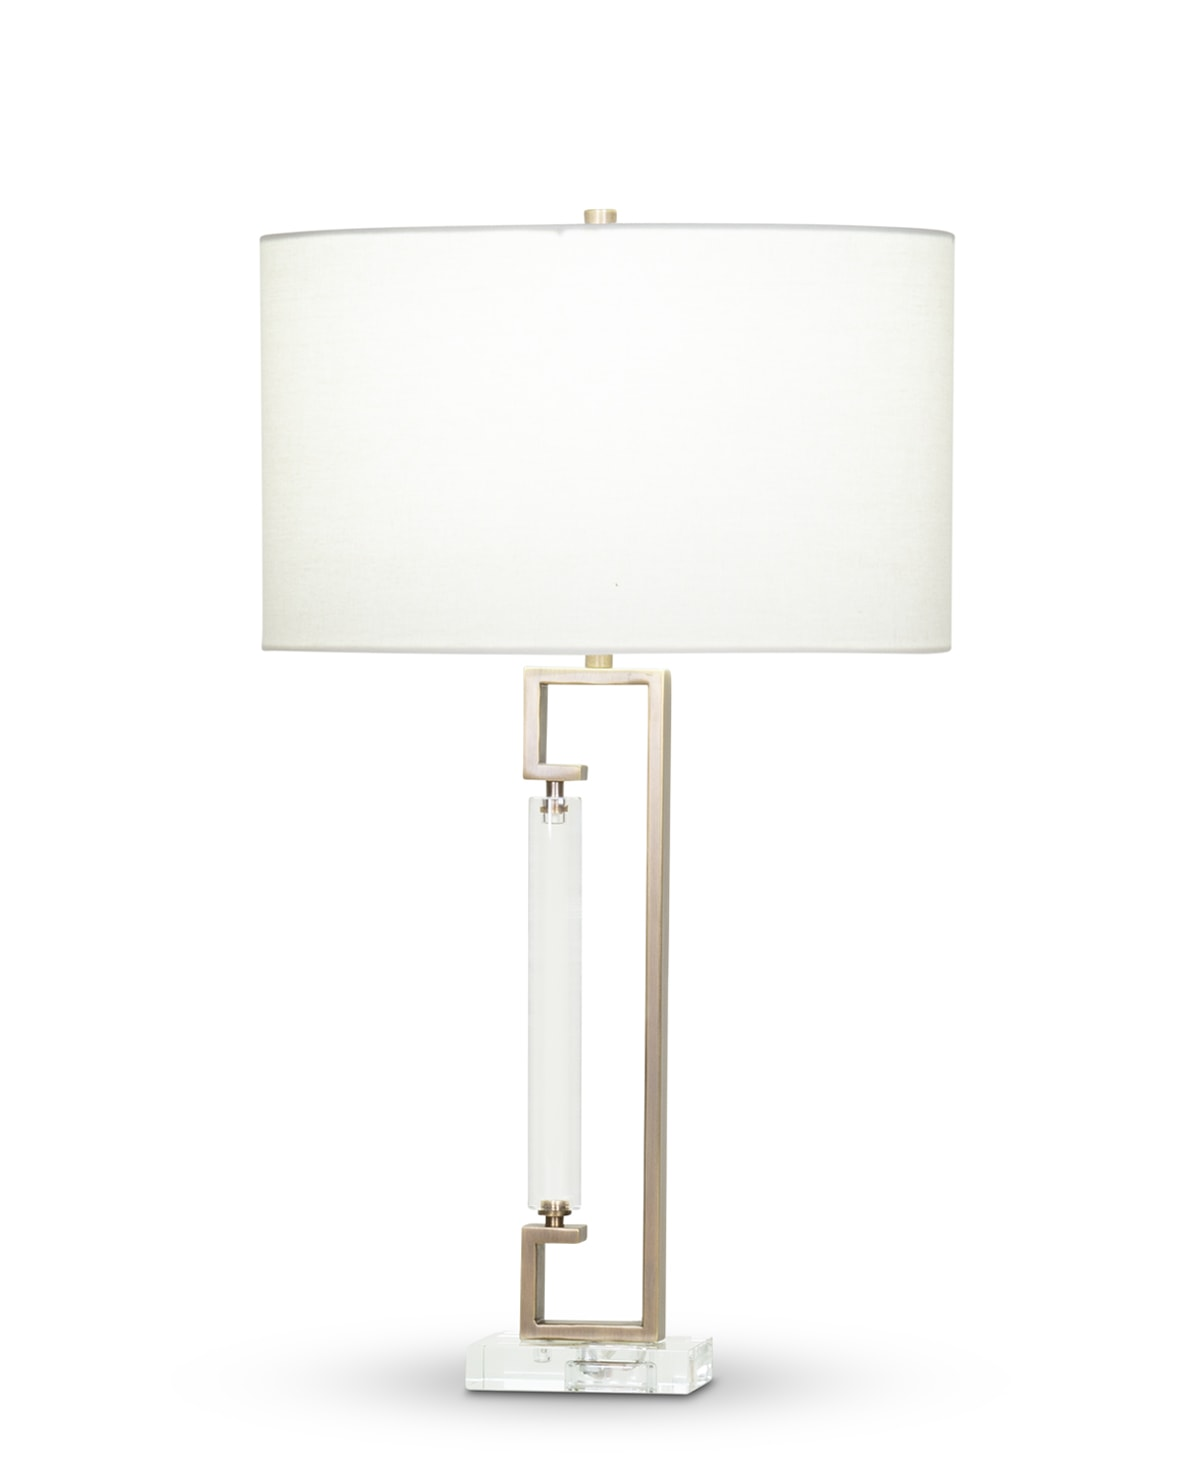 FlowDecor Juliette Table Lamp in crystal and metal with antique brass finish and off-white linen oval shade (# 4357)